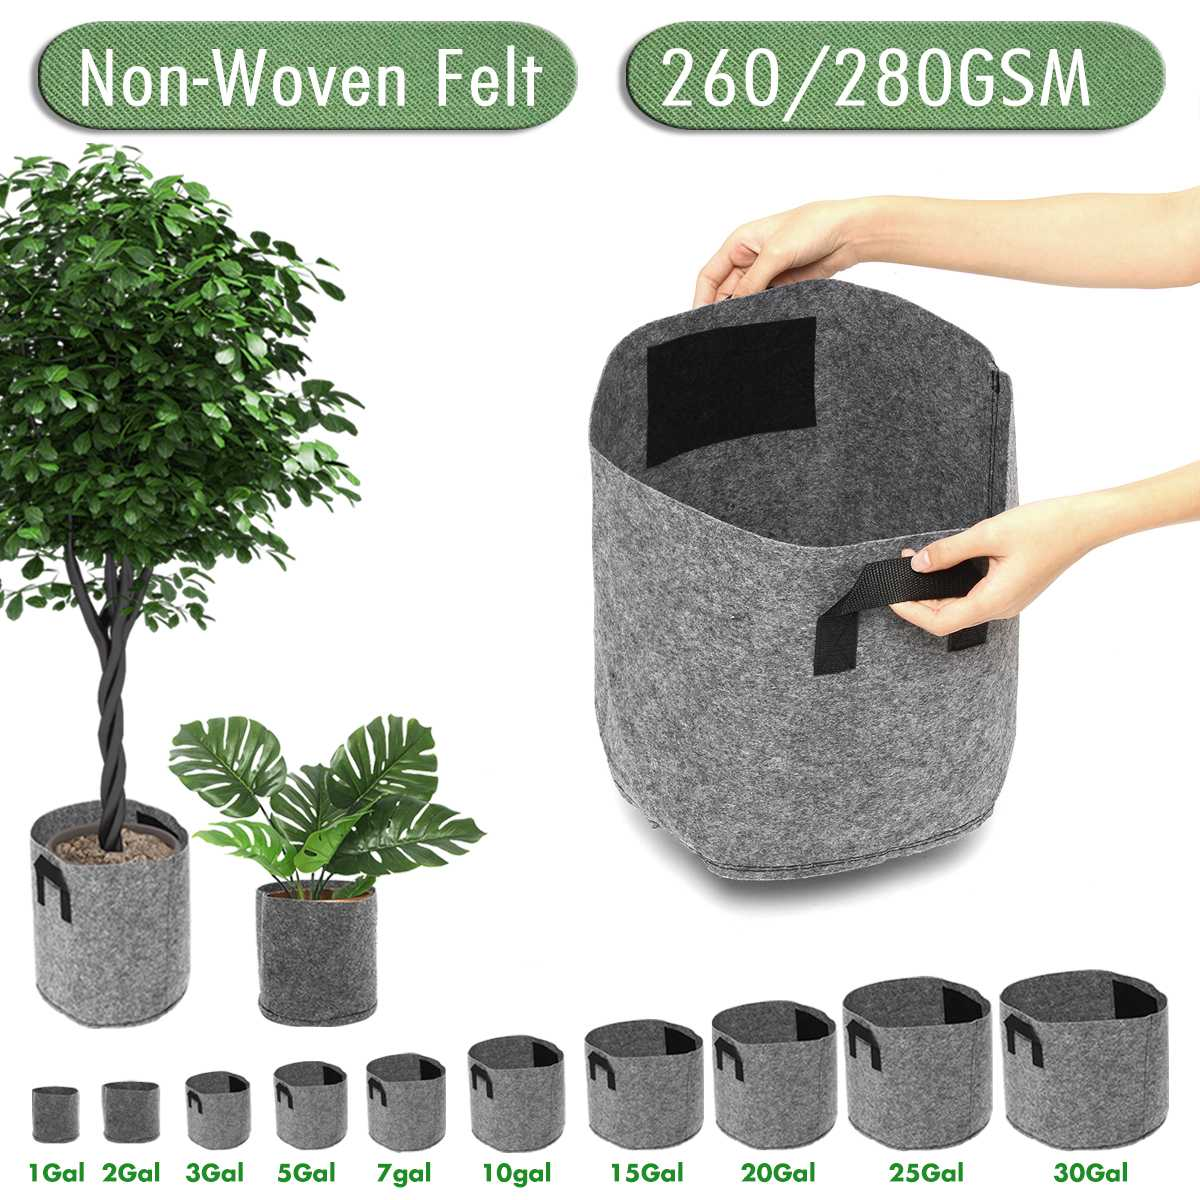 Non-Woven Felt 1-30 Gallon Fabric Grow Bags Breathable Pots Planter Root Pouch Container Plant Smart Pots With Handles Garden Su